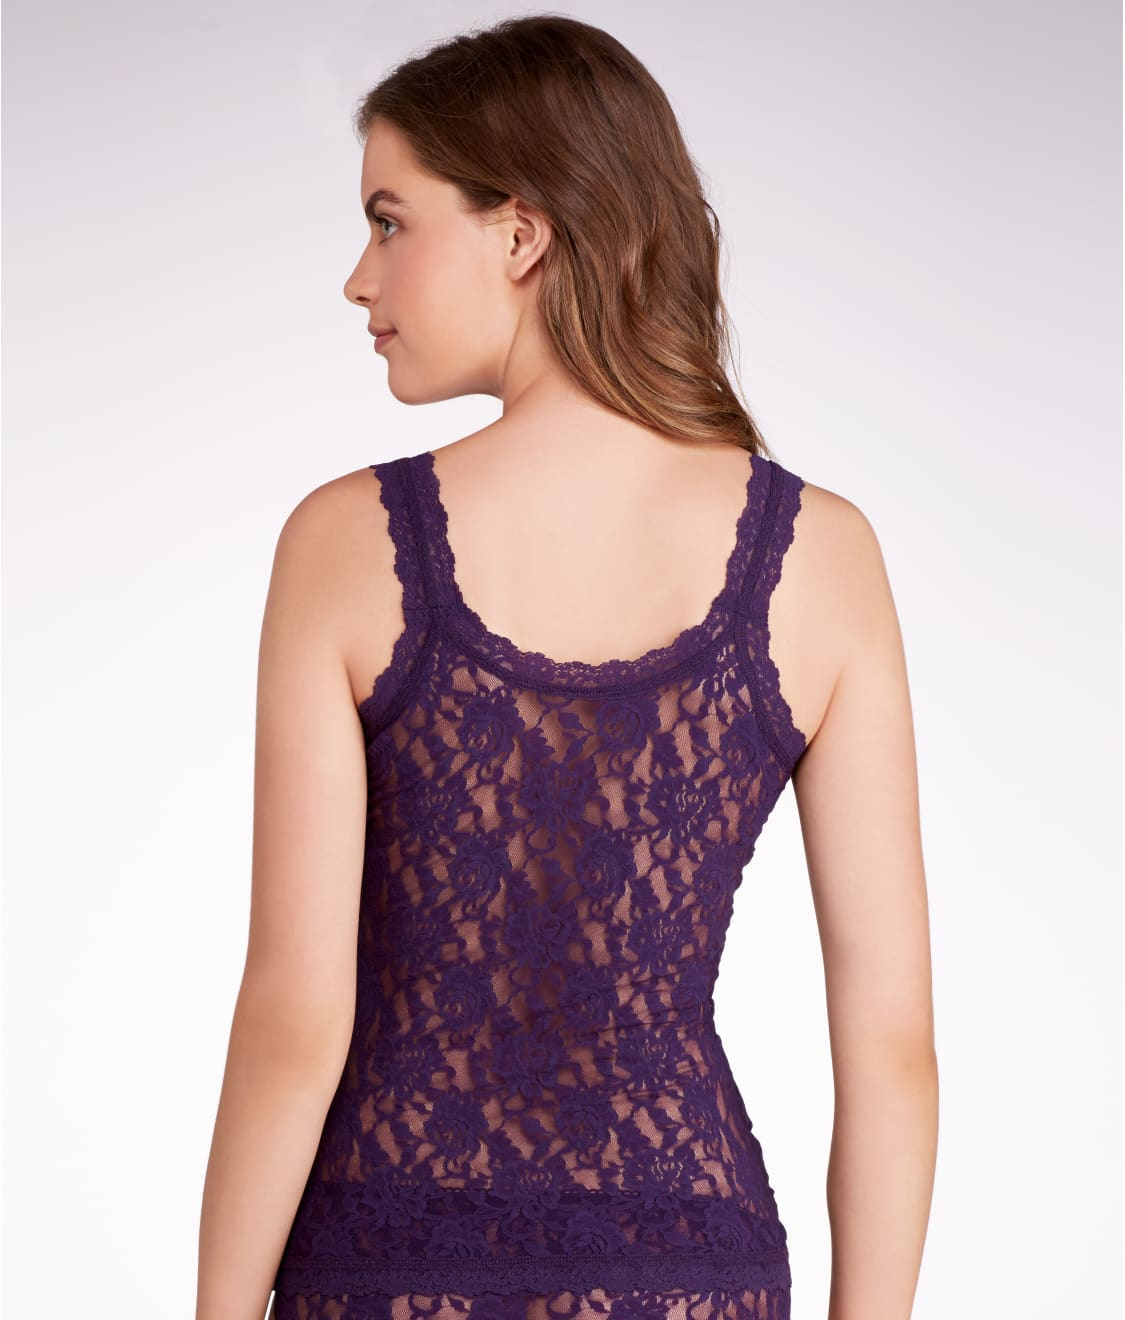 a6b0710372a Hanky Panky Signature Lace Unlined Camisole